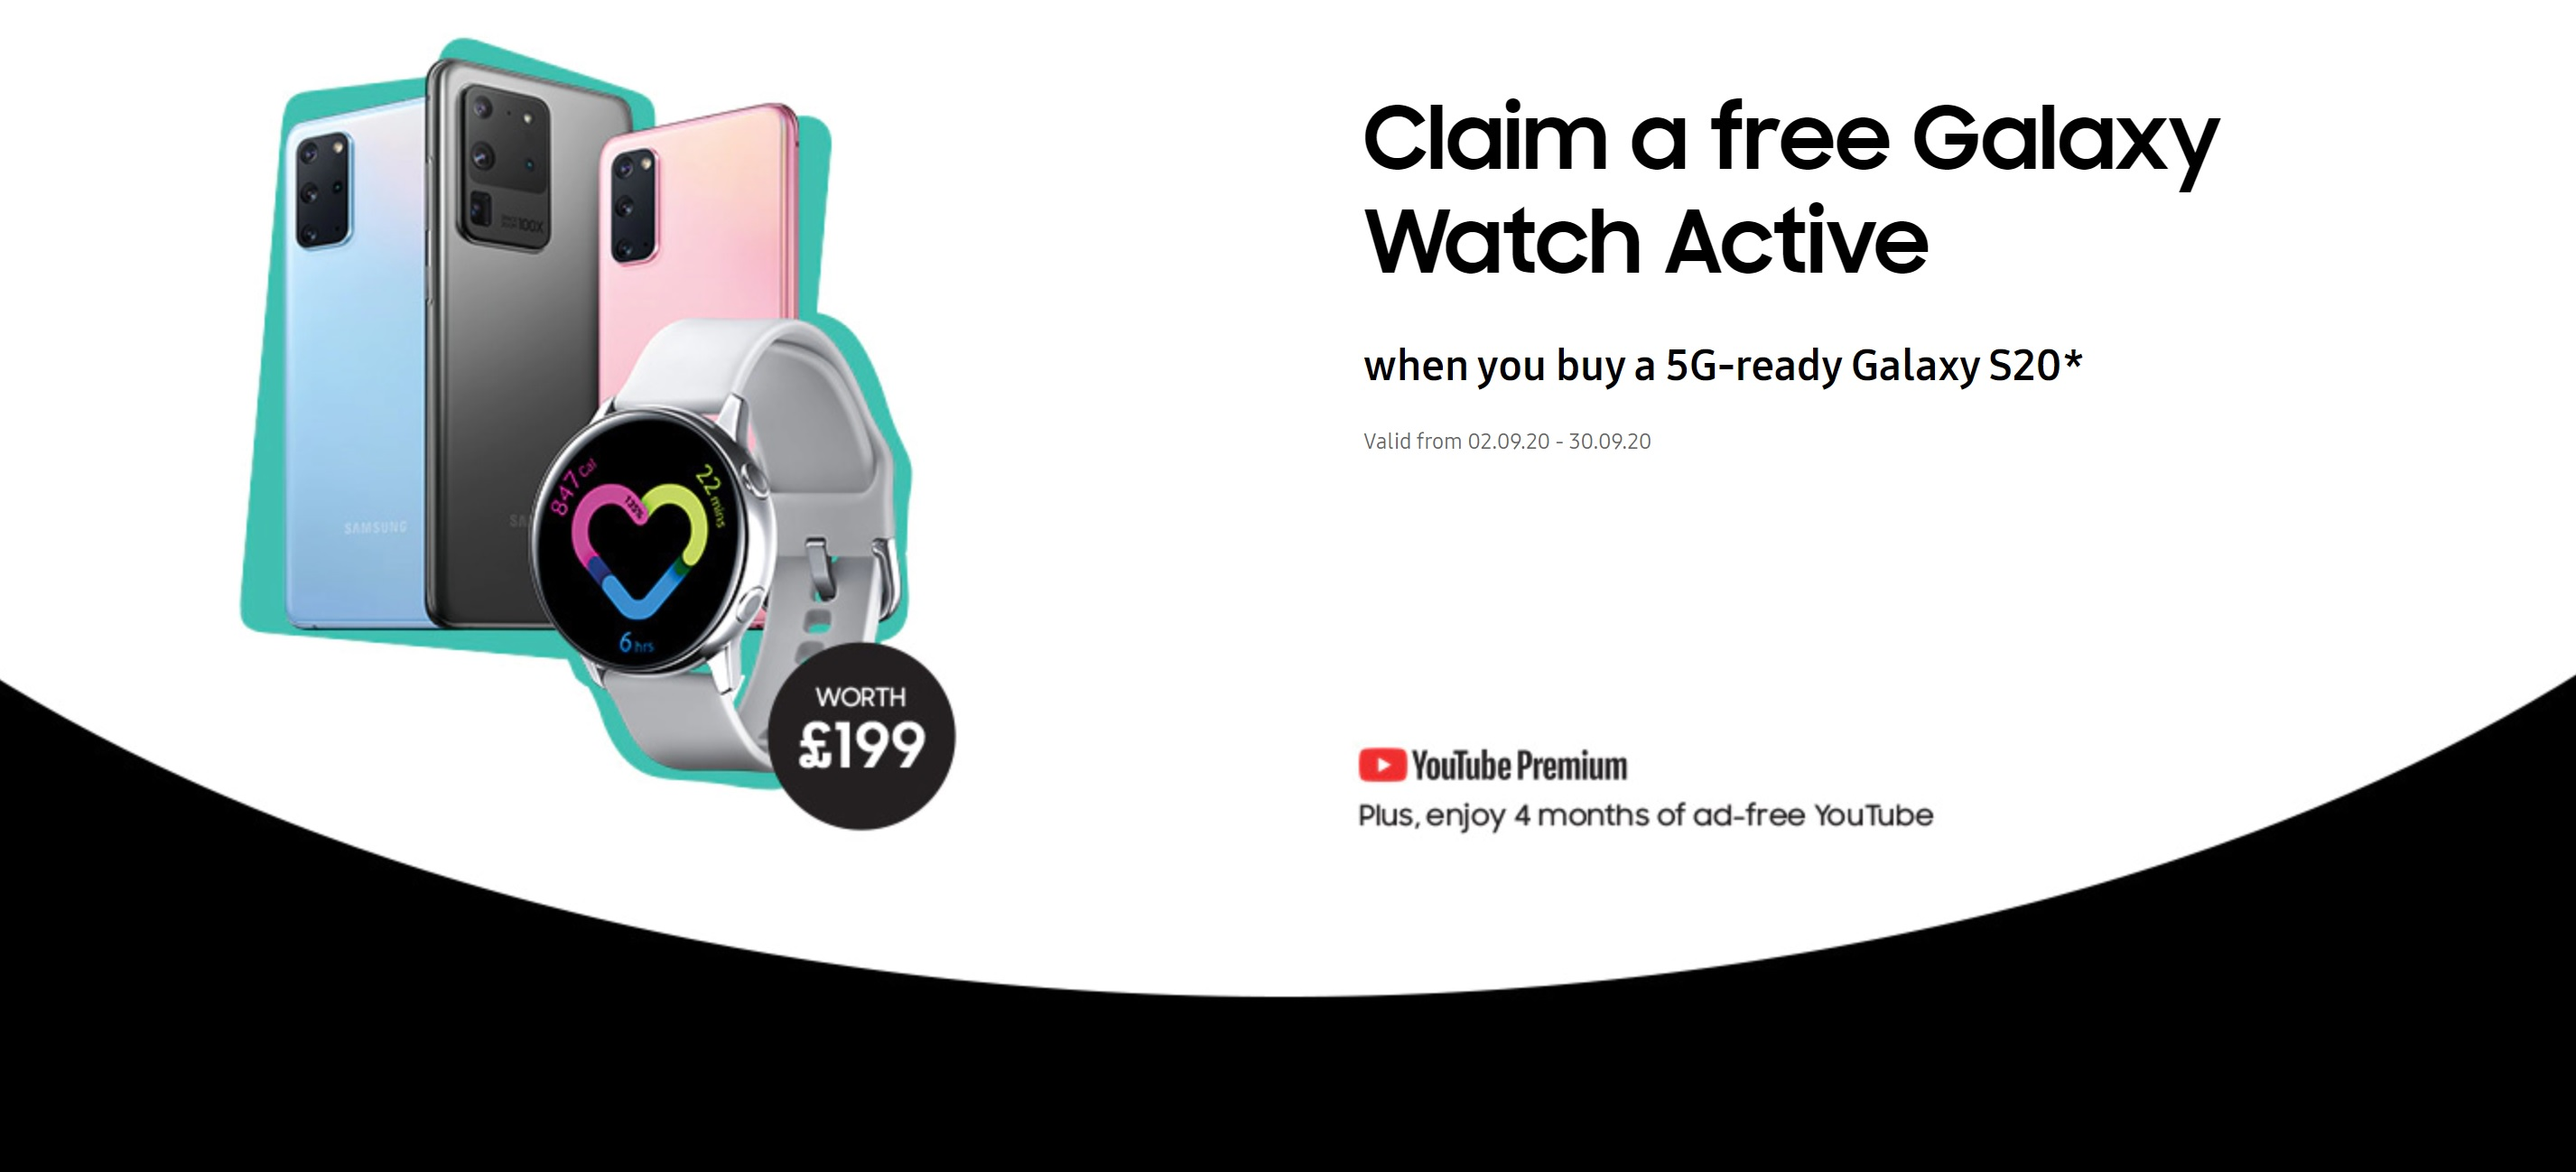 Free gifts with Samsung S20 5G, S20+ 5G and S20 Ultra 5G deals, claim a free Galaxy Watch Active and 4 months free Youtube Premium.